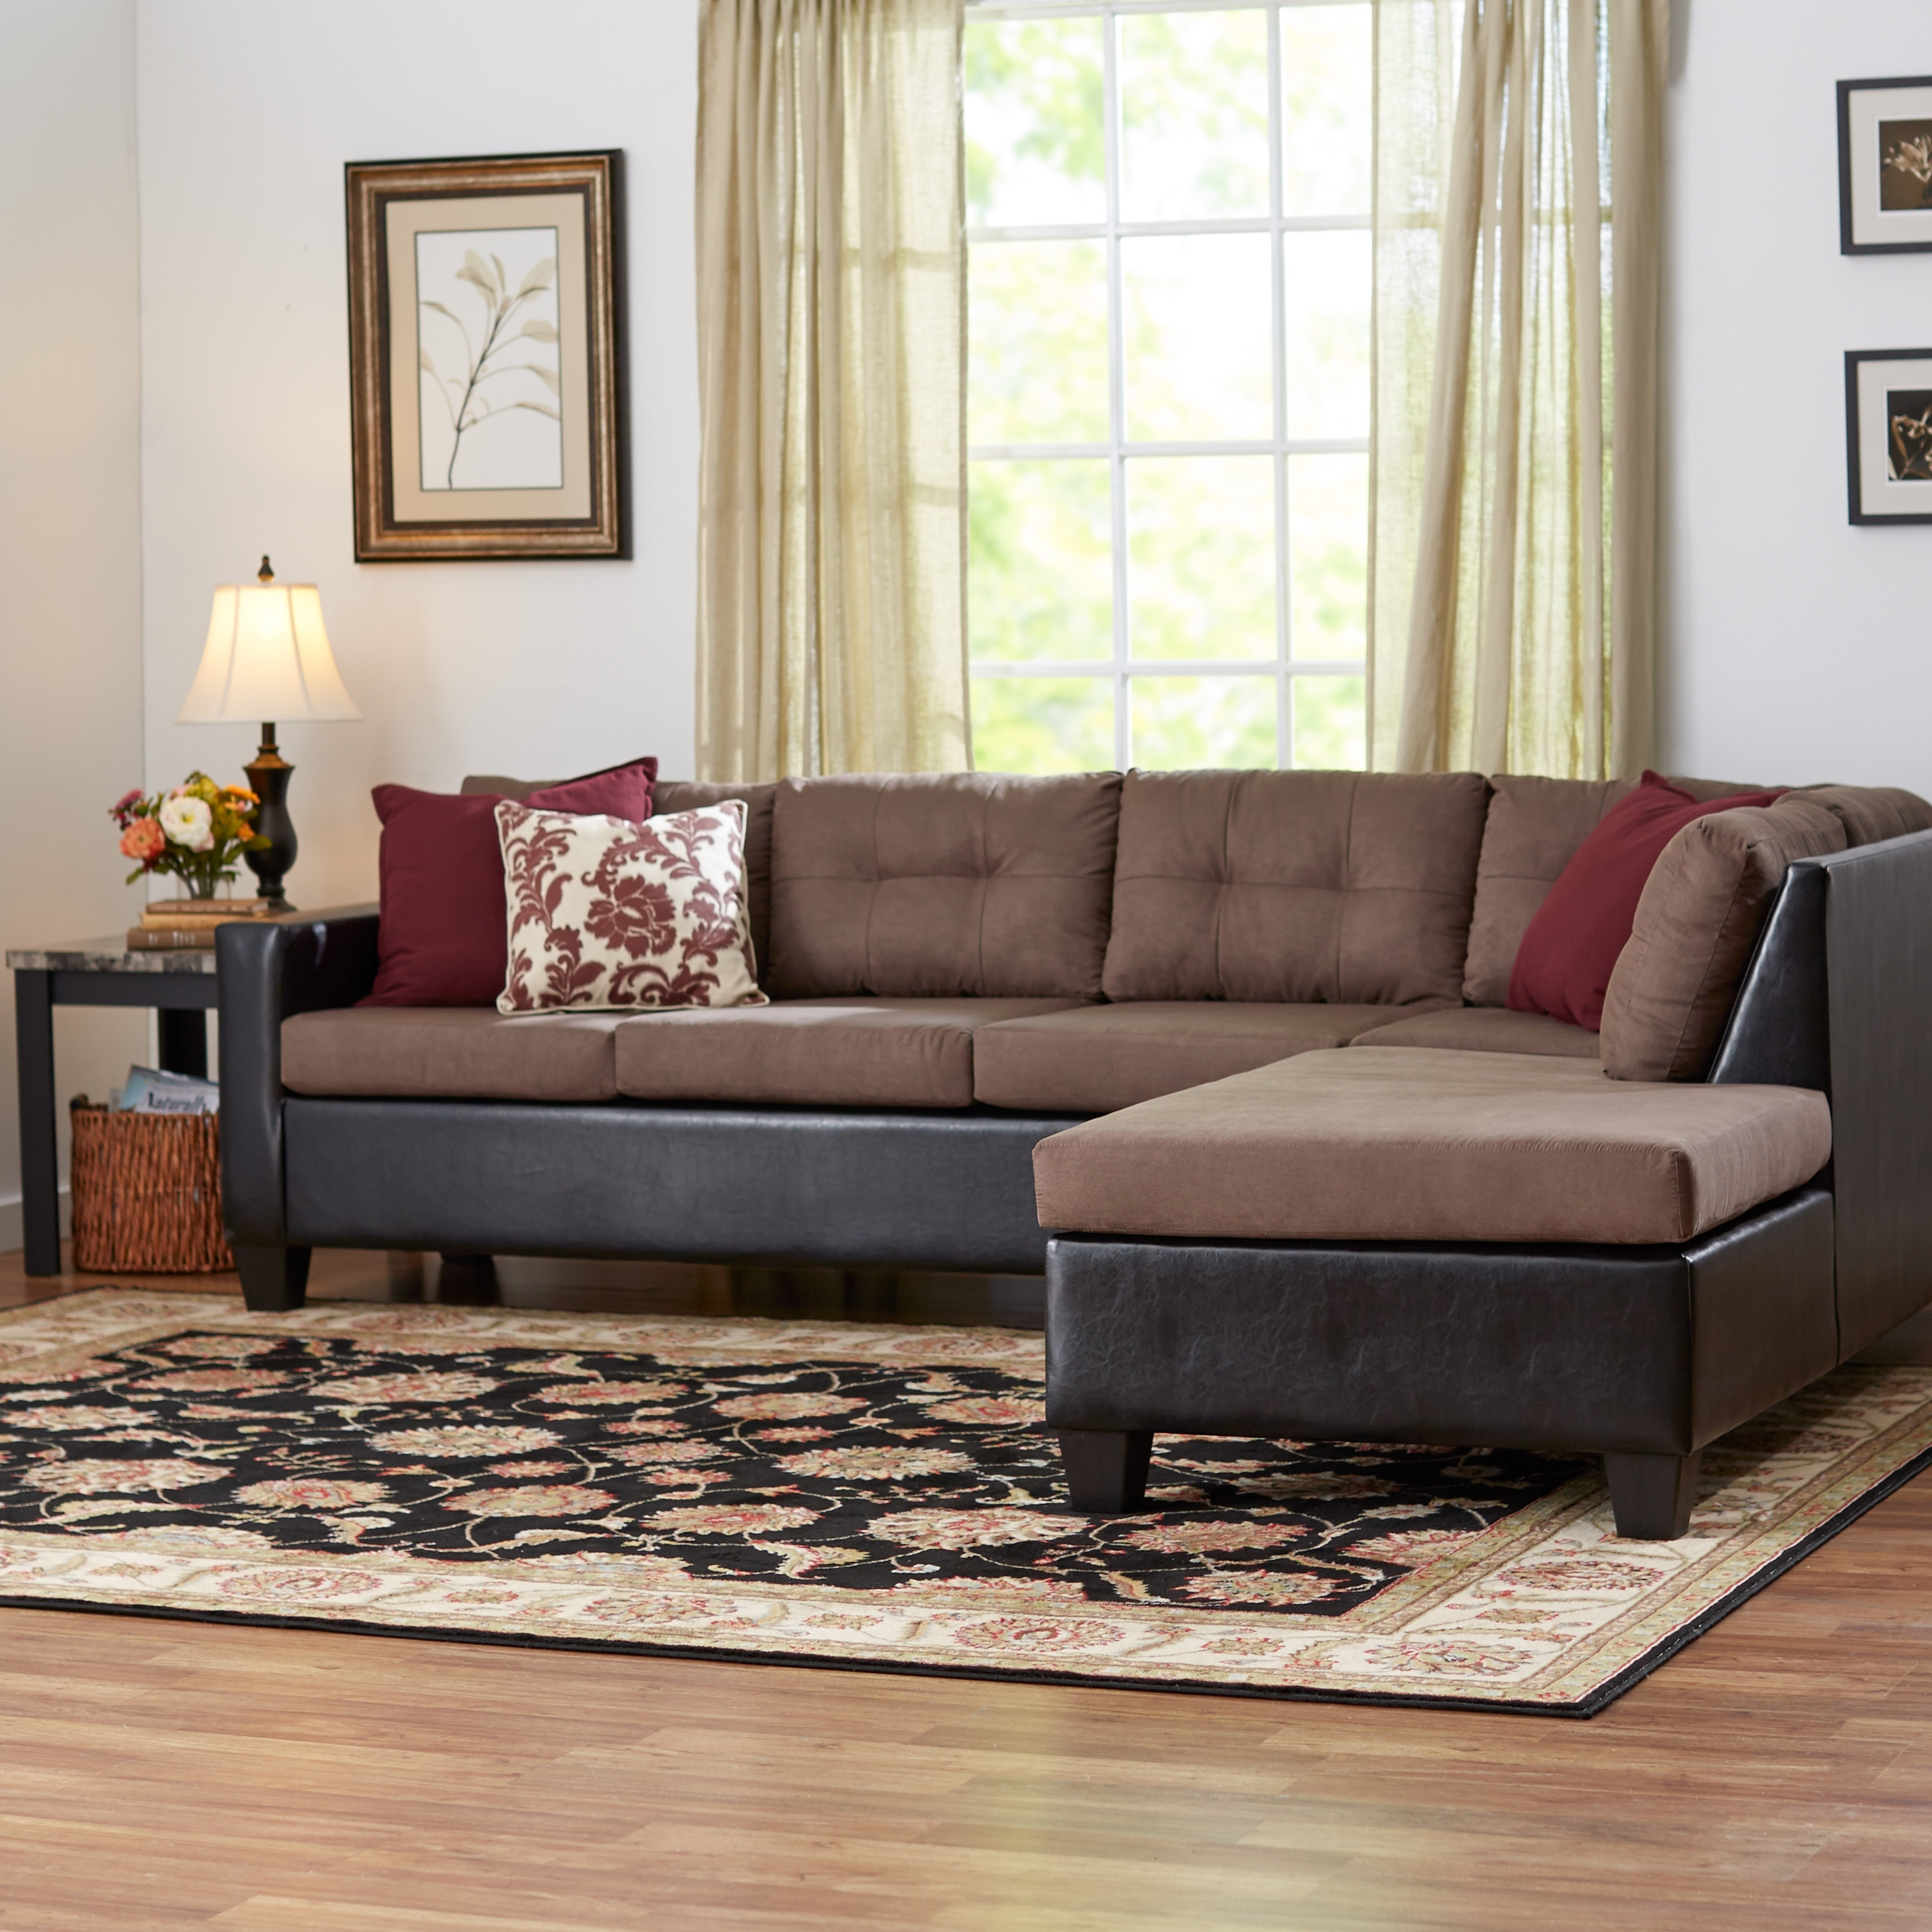 Furniture : Magnificent Couch Under 200 Best Of Sofa Elegant Pertaining To Clearance Sectional Sofas (Image 7 of 10)